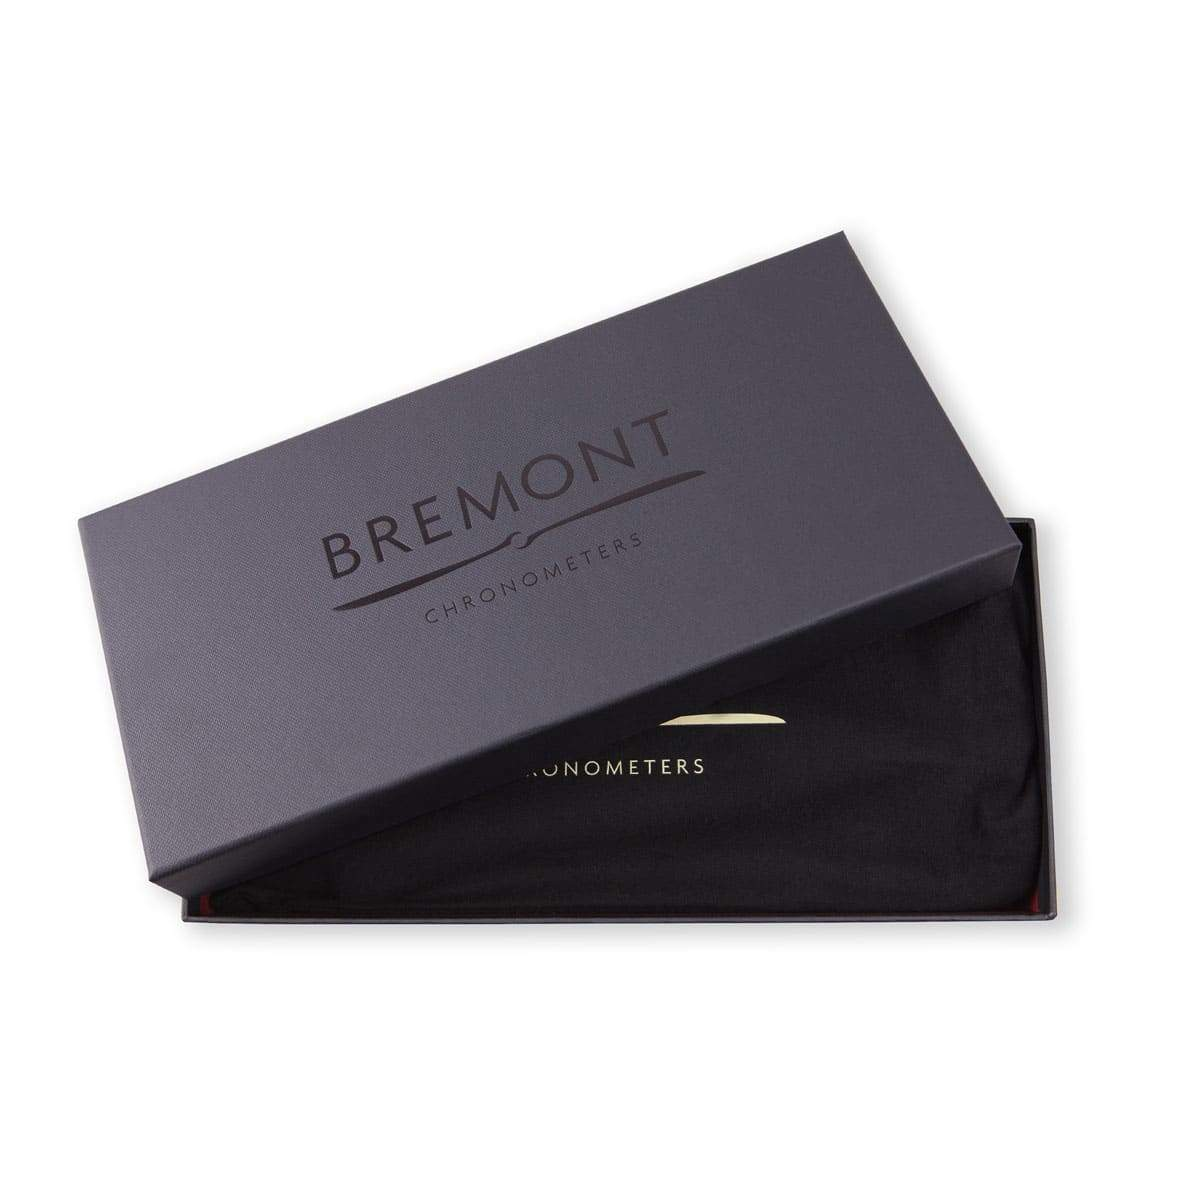 Bremont-Packaging-General-Wallet-min 60a74b35-c207-4c52-ab36-c73e80fa9fcf